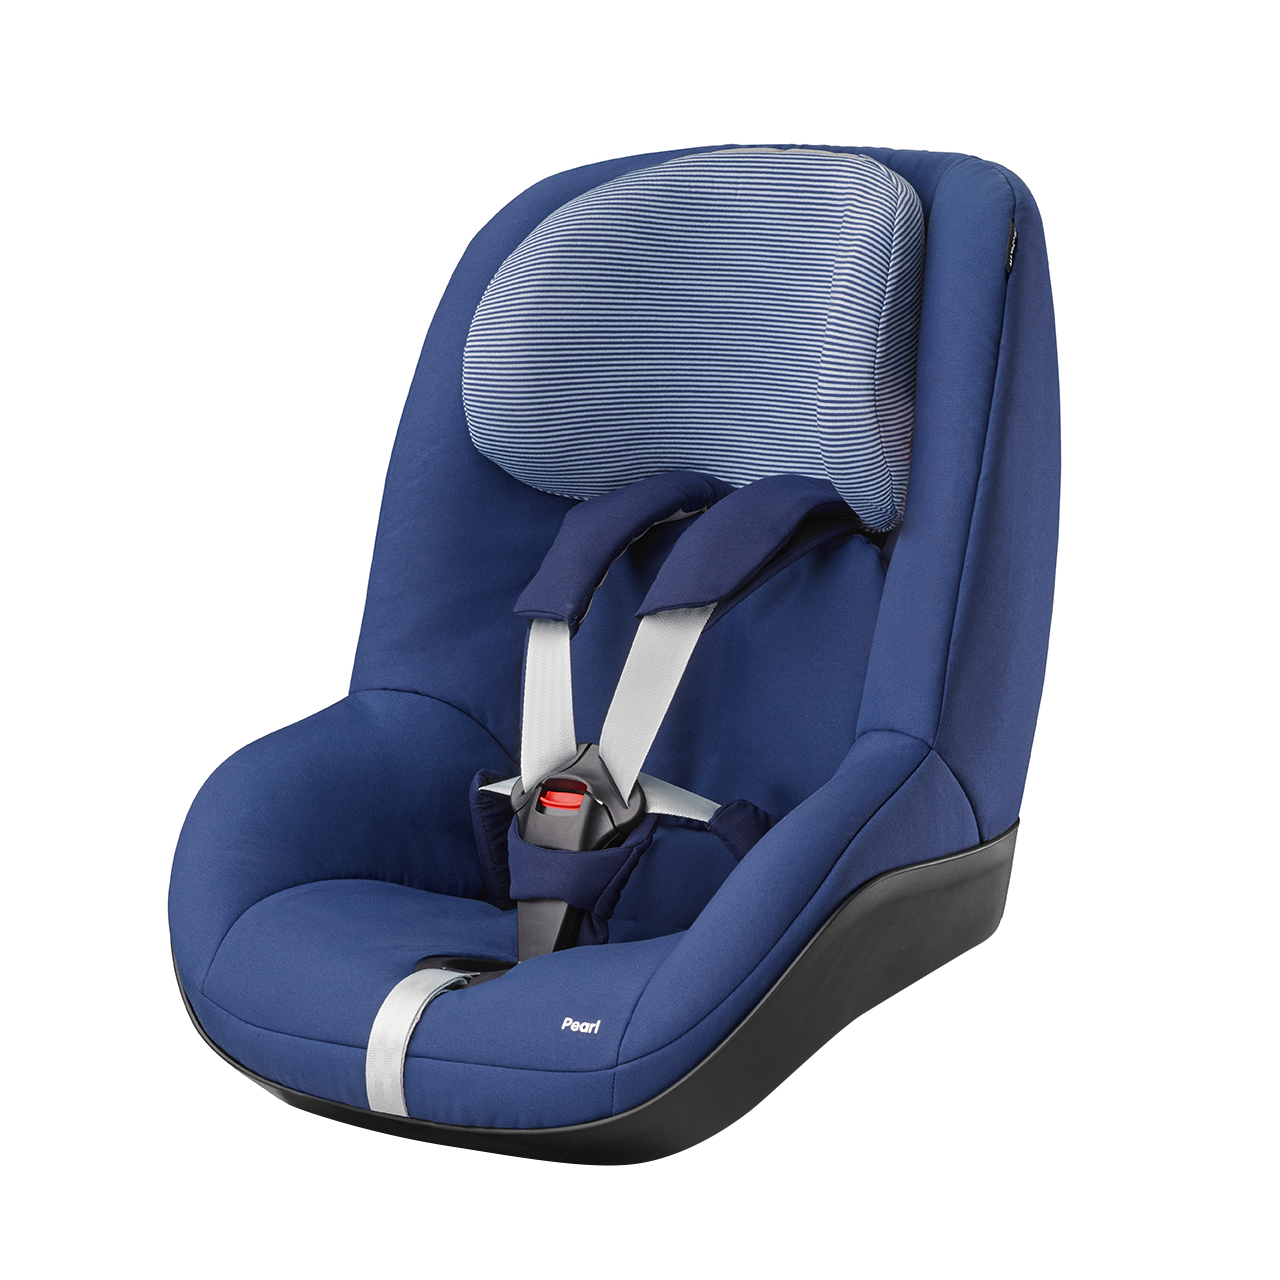 maxi cosi child car seat pearl 2017 river blue buy at kidsroom car seats. Black Bedroom Furniture Sets. Home Design Ideas